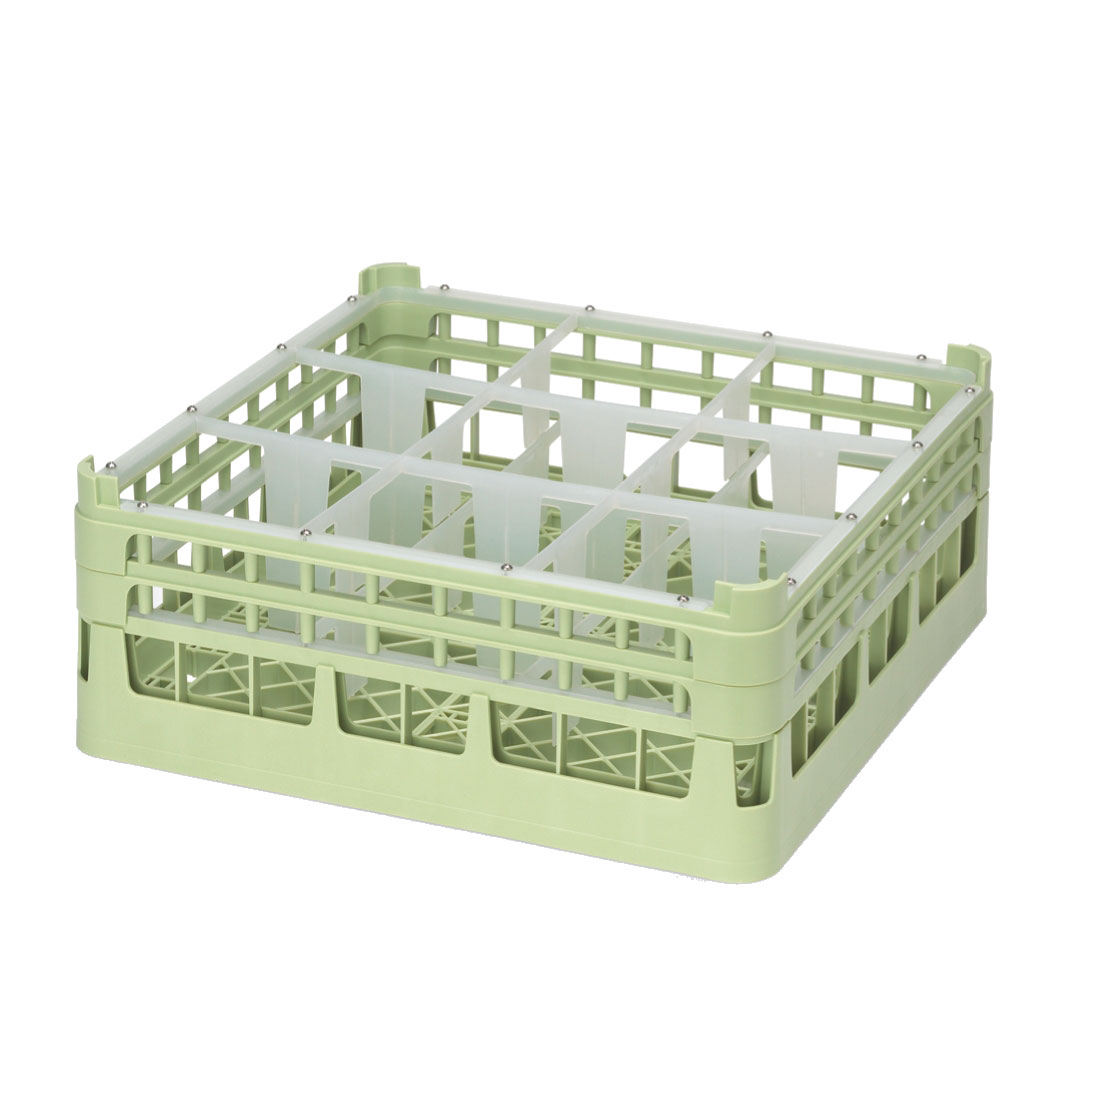 Vollrath 52761 dishwasher rack, glass compartment